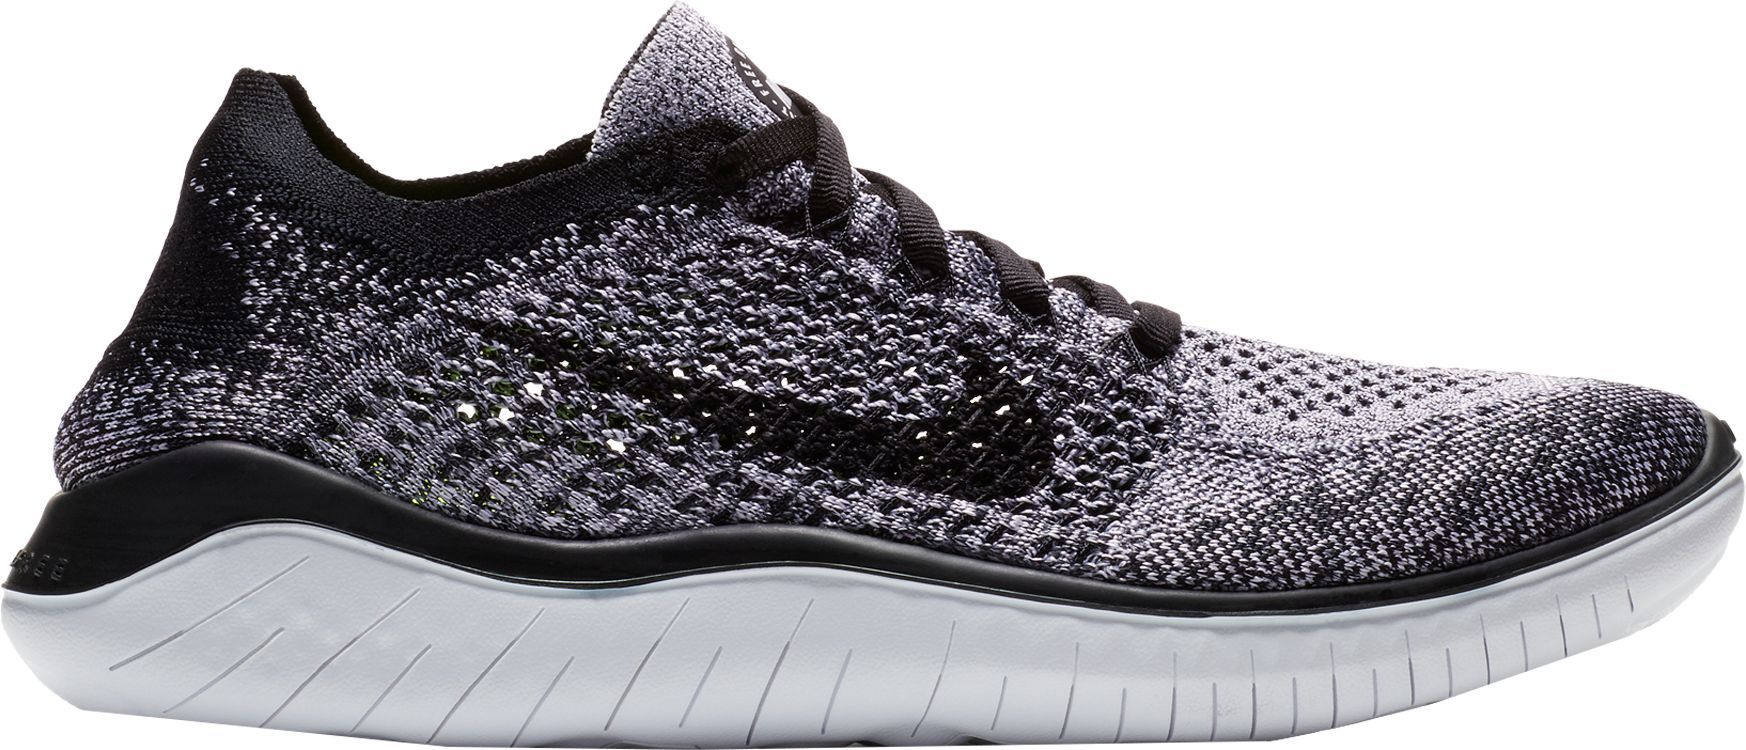 new styles a2a23 a1b0f Nike Women's Free RN Flyknit 2018 Running Shoes in 2019 ...